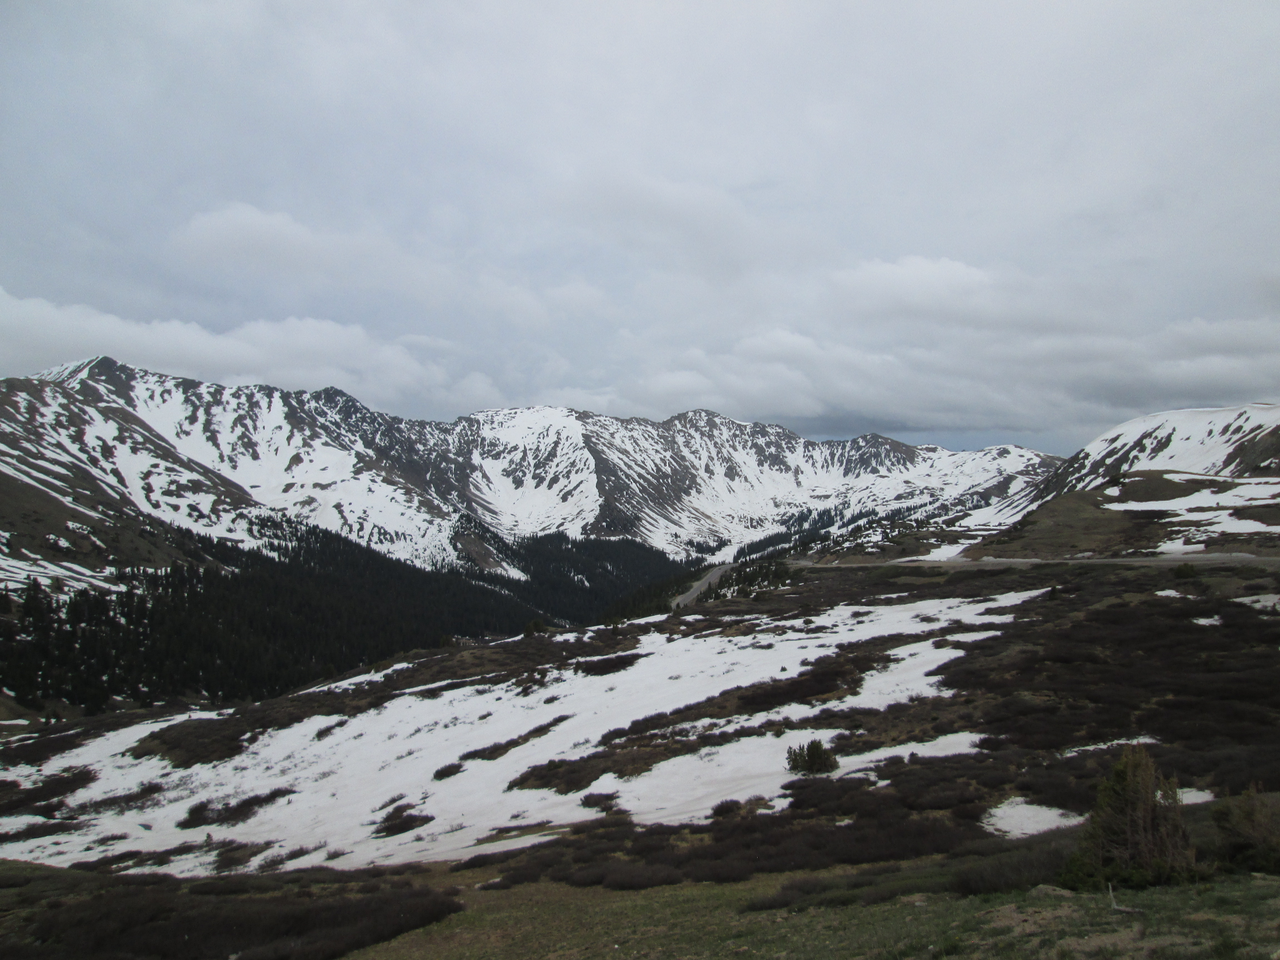 Looking south from Loveland Pass at (from left to right) Grizzly Peak (13,427'), Lenawee Mountain (13,201'), and the Arapahoe Basin ski area, on June 16, 2015.